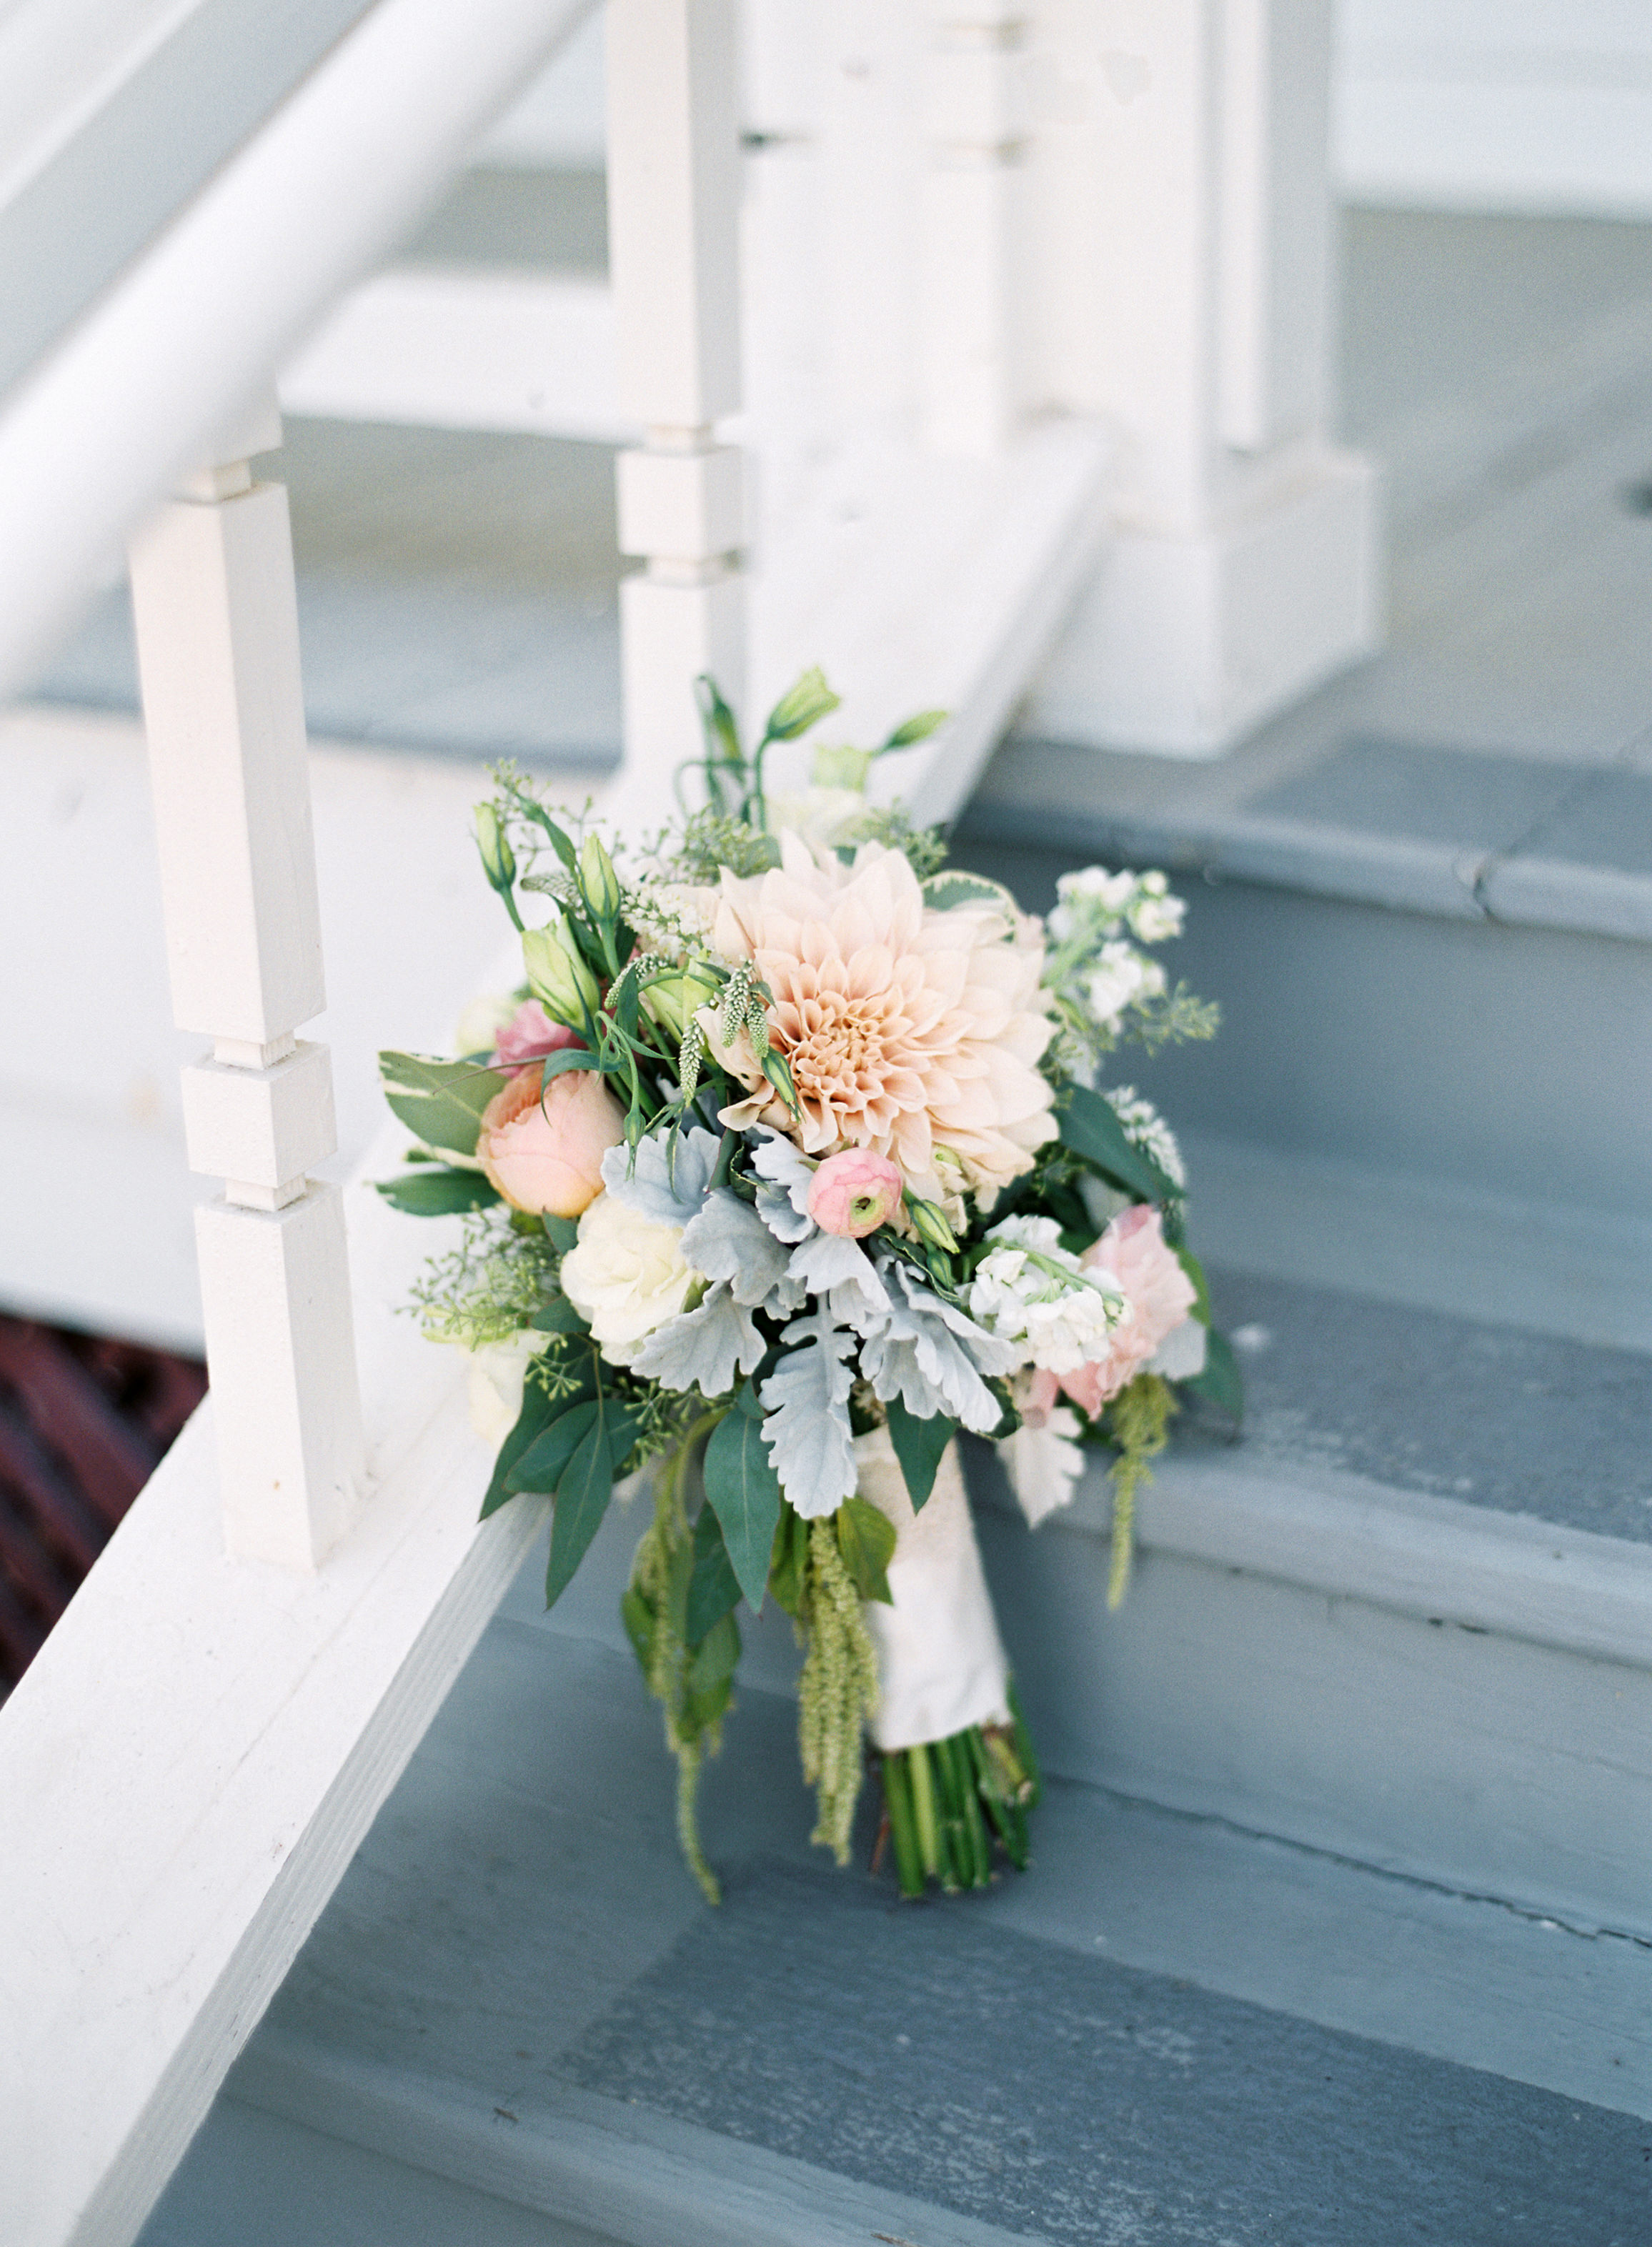 southern-inspired-wedding-at-ravenswood-historic-site-001-2.jpg